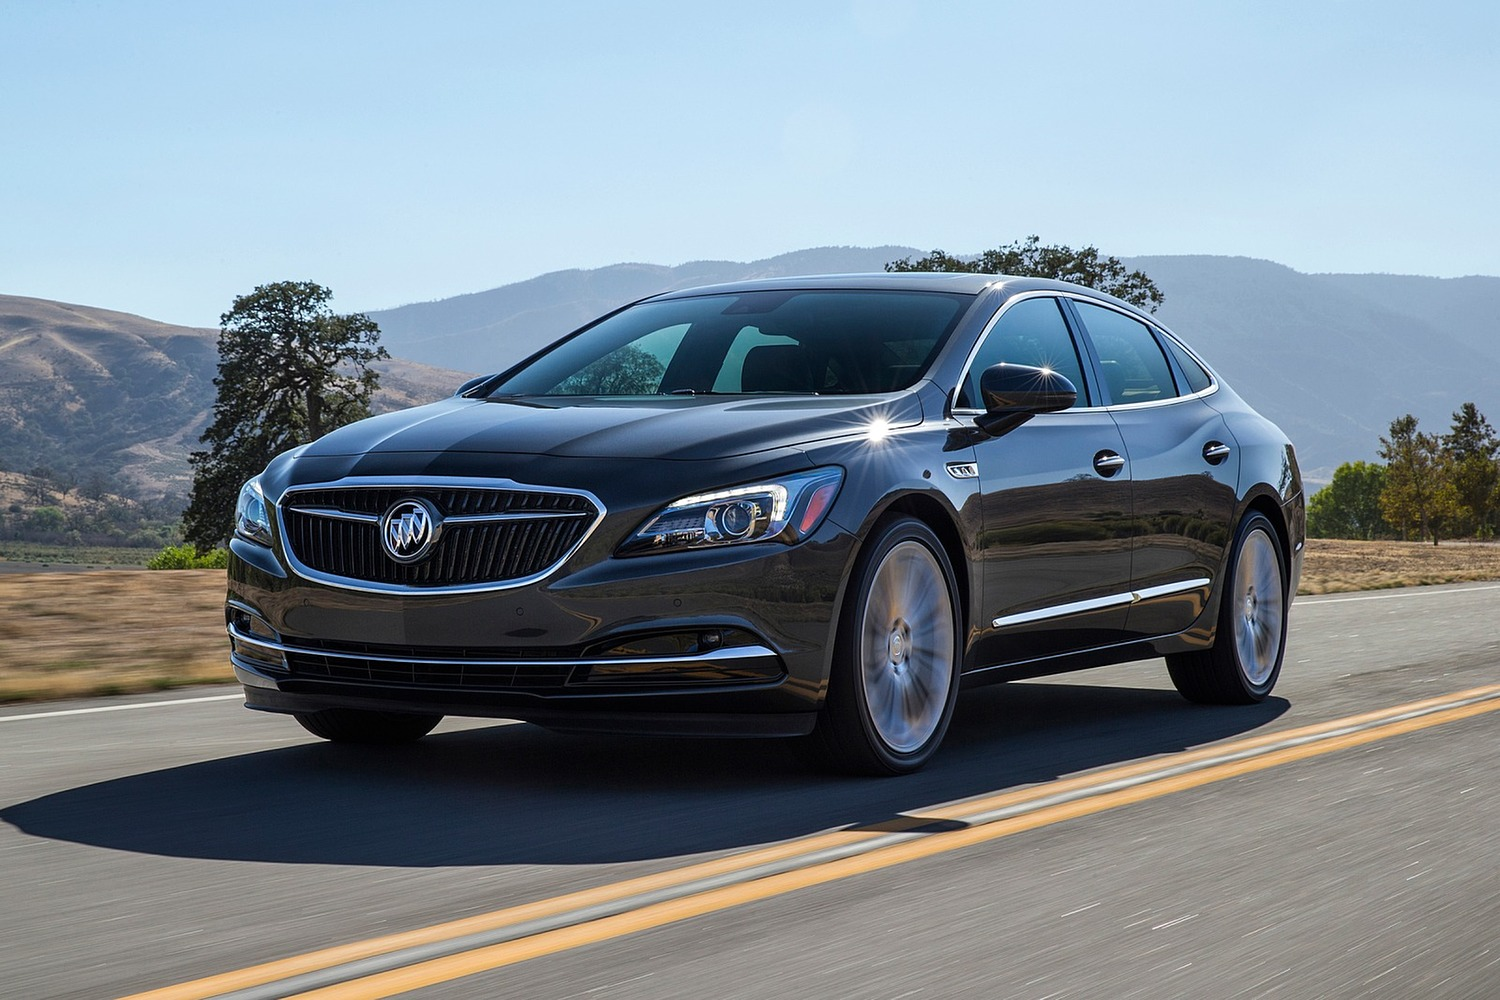 2018 Buick LaCrosse Premium Sedan Exterior Shown